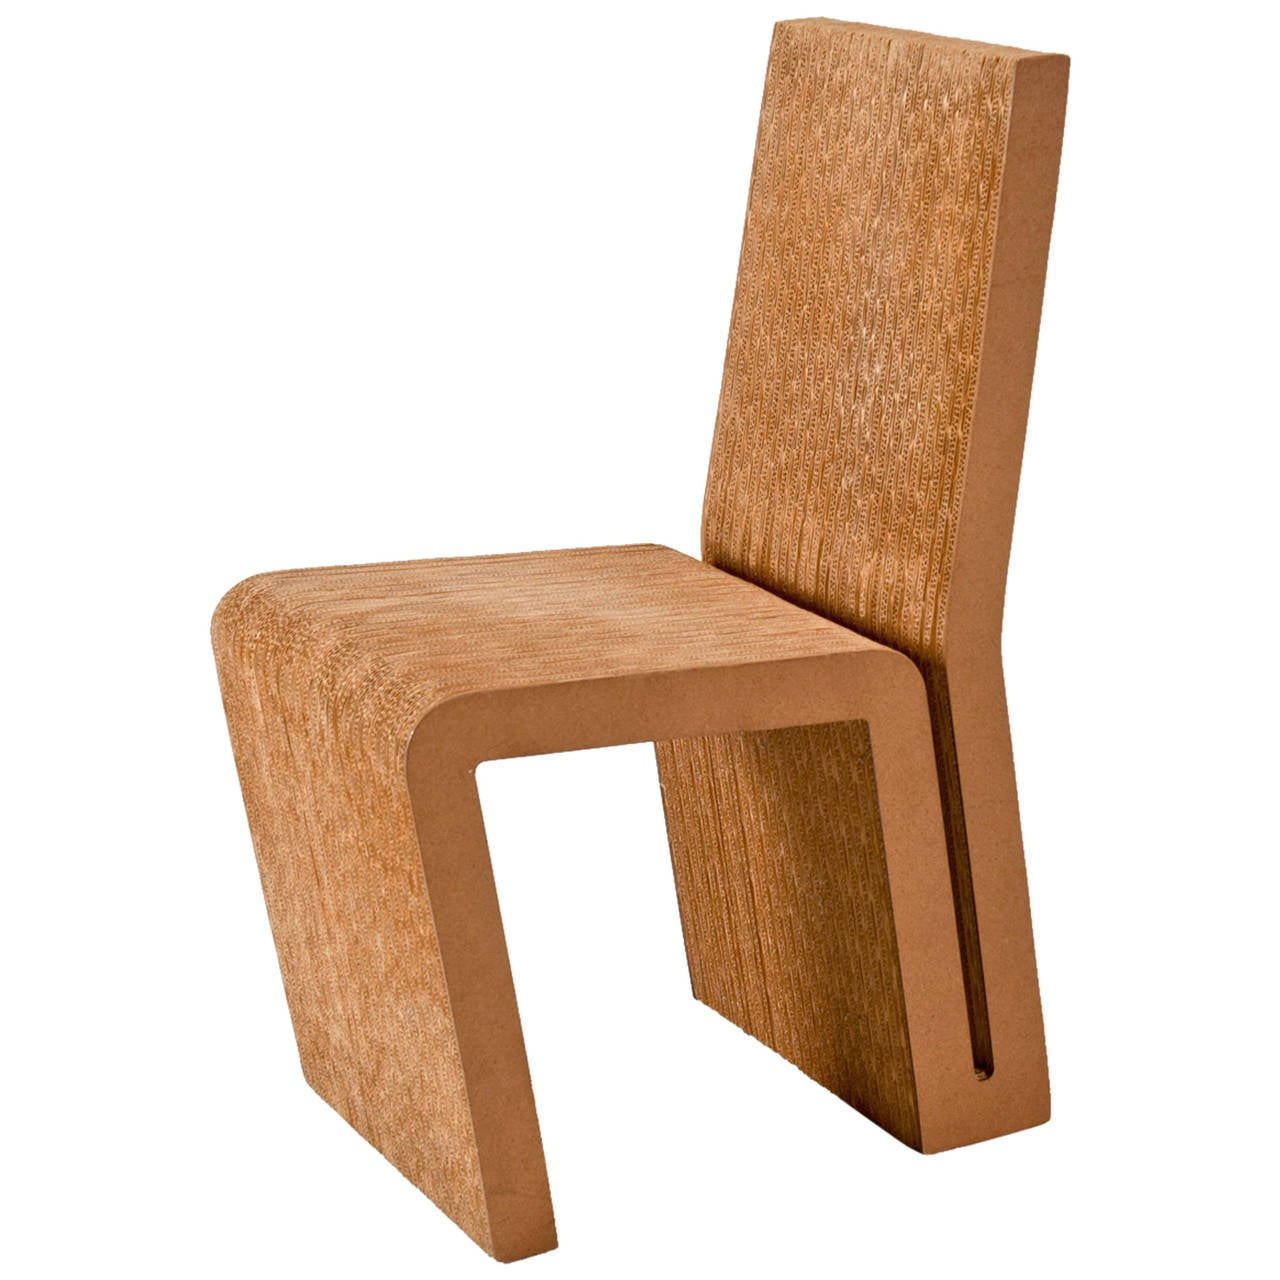 Frank Gehry Side Chair in Cardboard for Vitra Edition For Sale